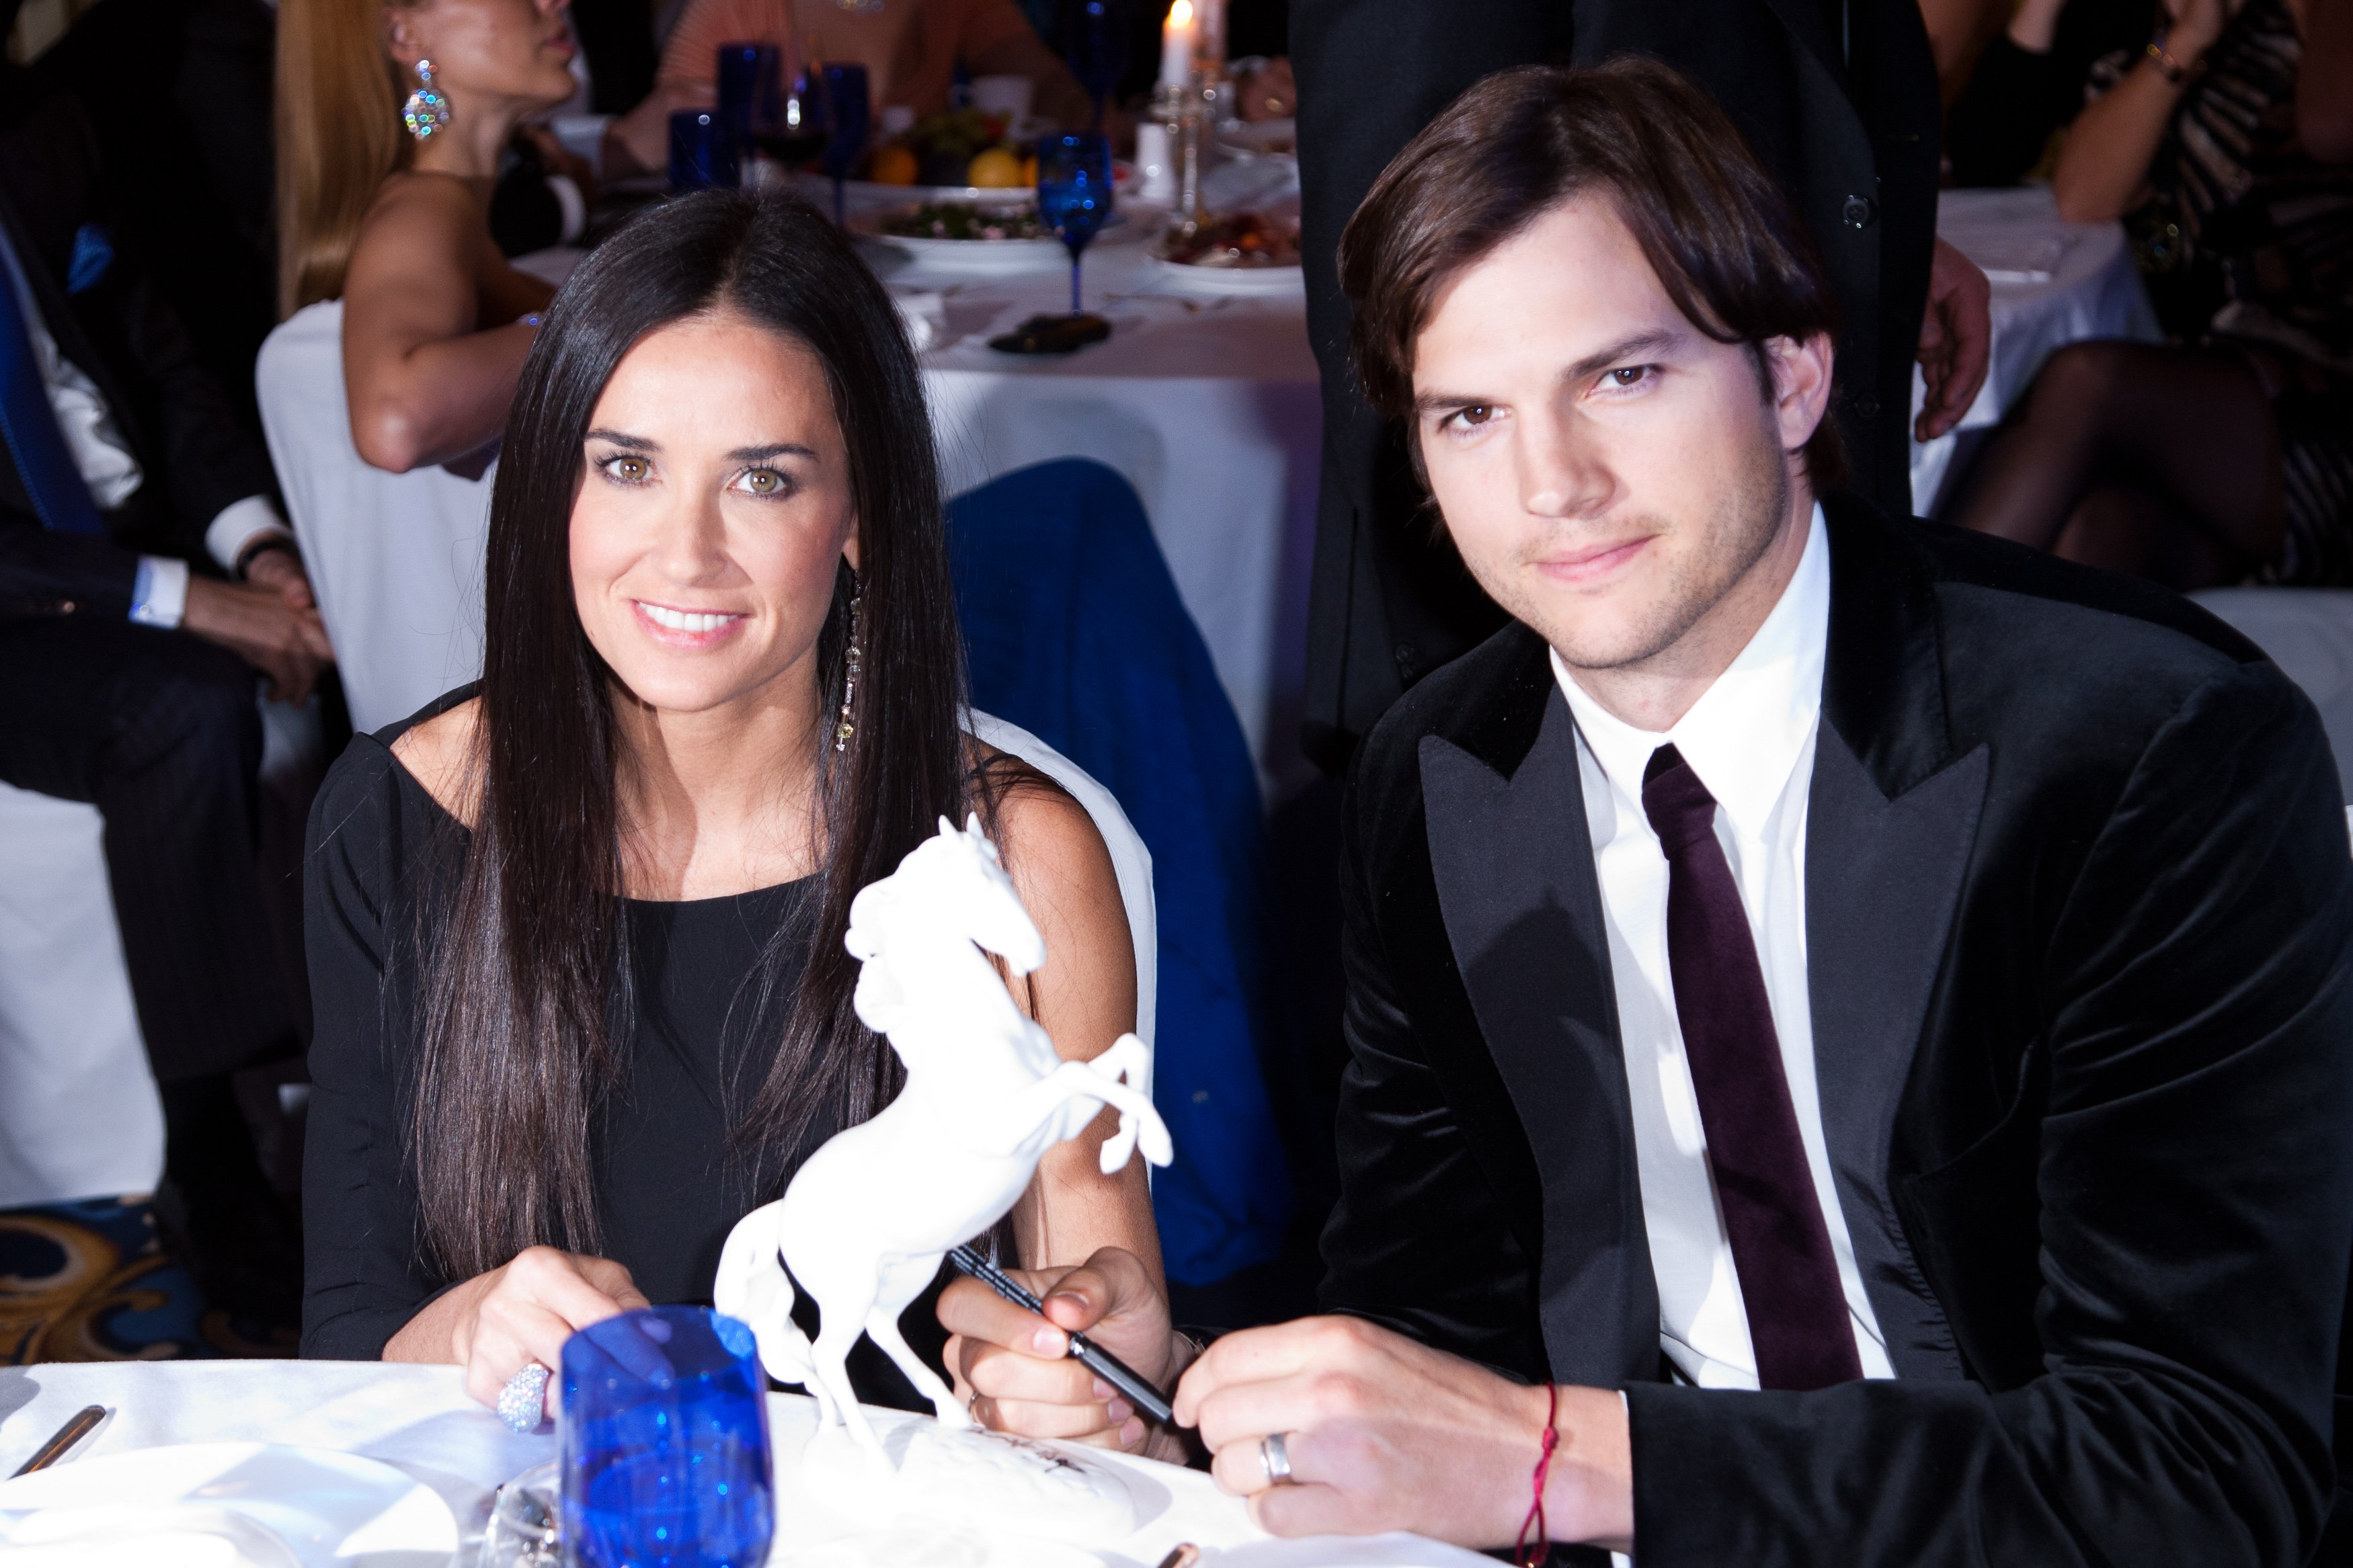 Demi Moore and Ashton Kutcher attend the Charity Gala on October 30, 2010 | Photo: GettyImages